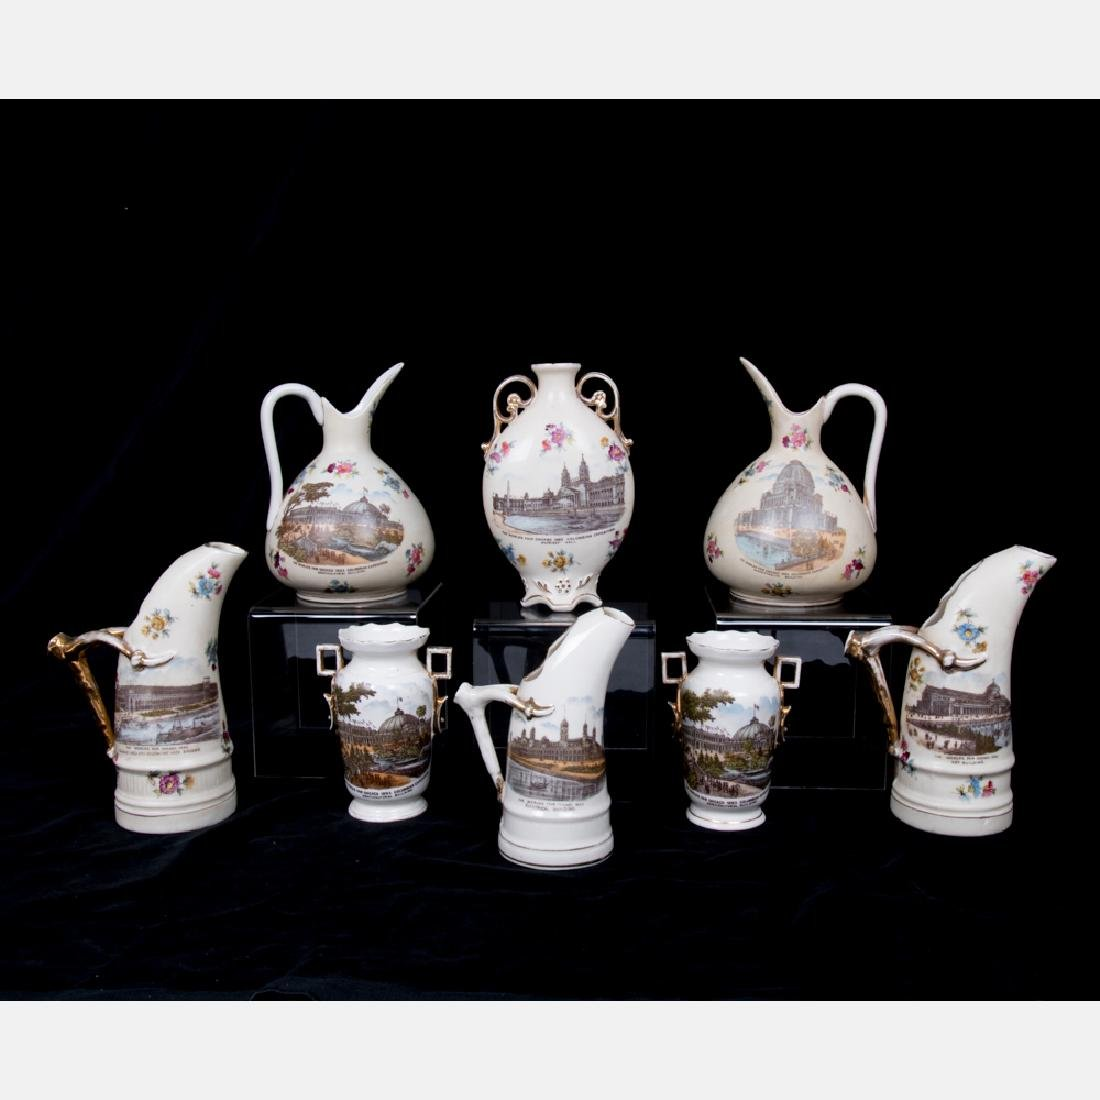 A Group of Eight Austria Transfer Printed Porcelain